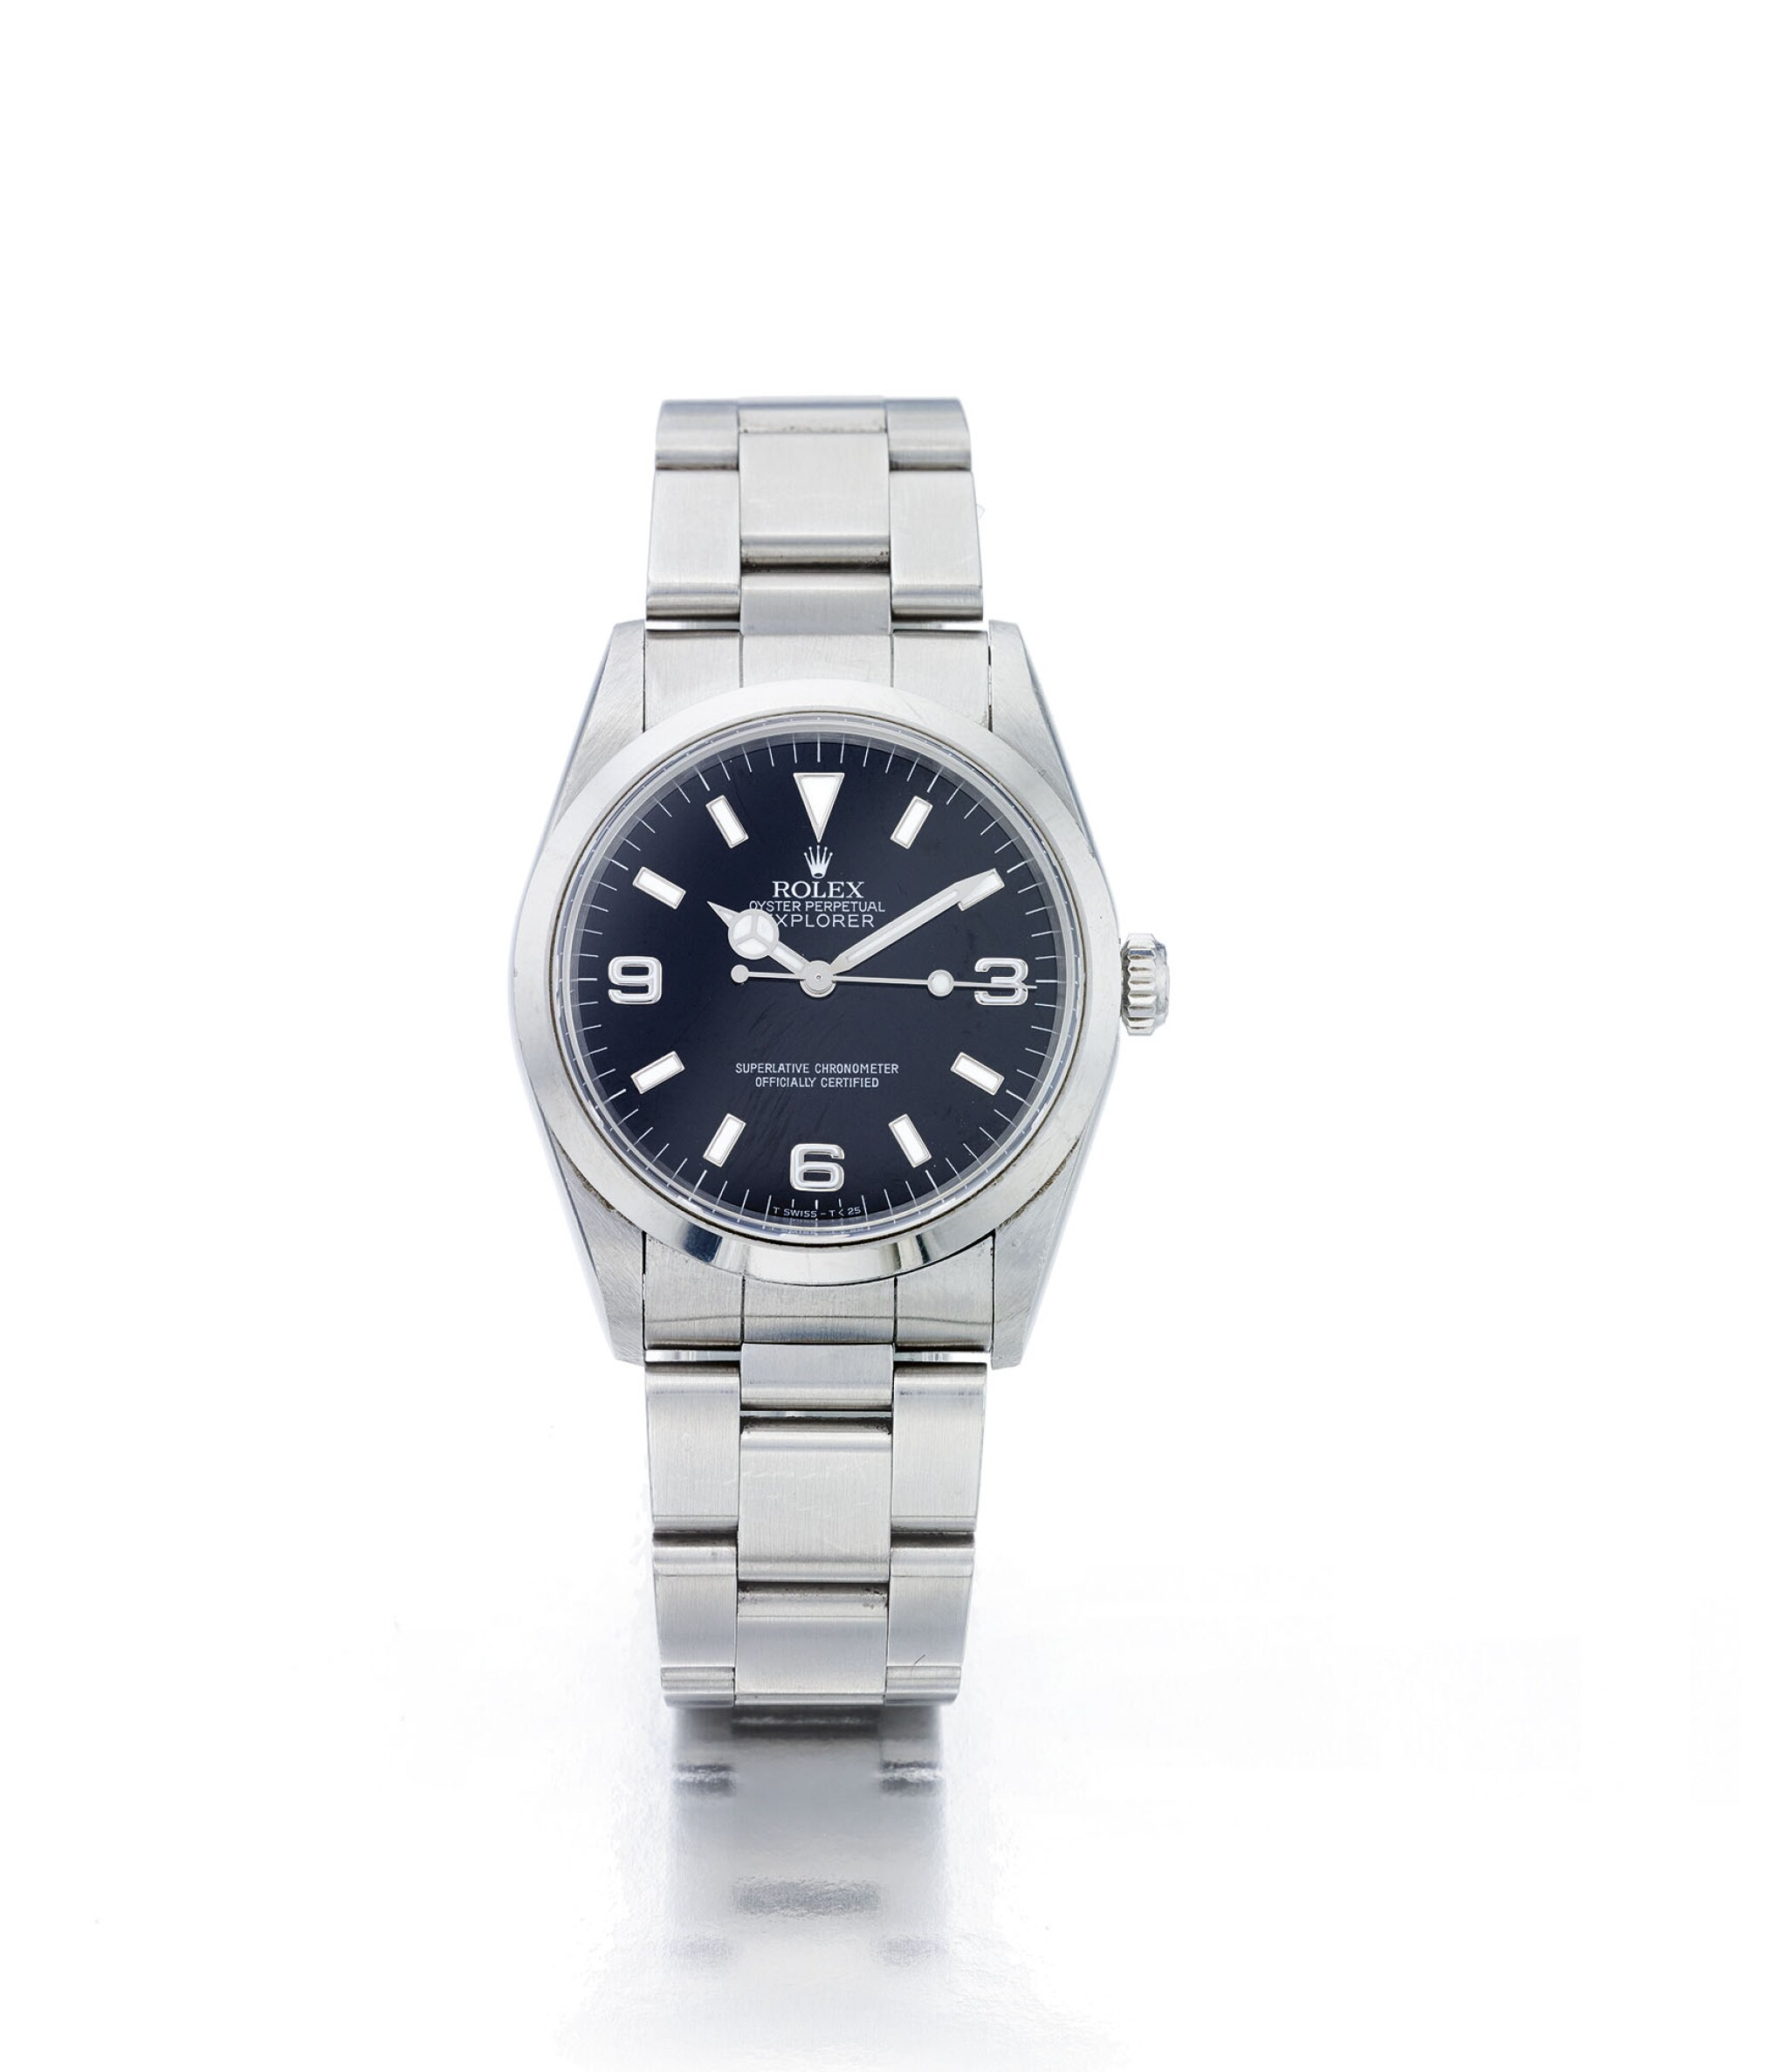 View full screen - View 1 of Lot 6. ROLEX | EXPLORER REF 14270, A STAINLESS STEEL AUTOMATIC CENTER SECONDS WRISTWATCH WITH BRACELET CIRCA 1997.